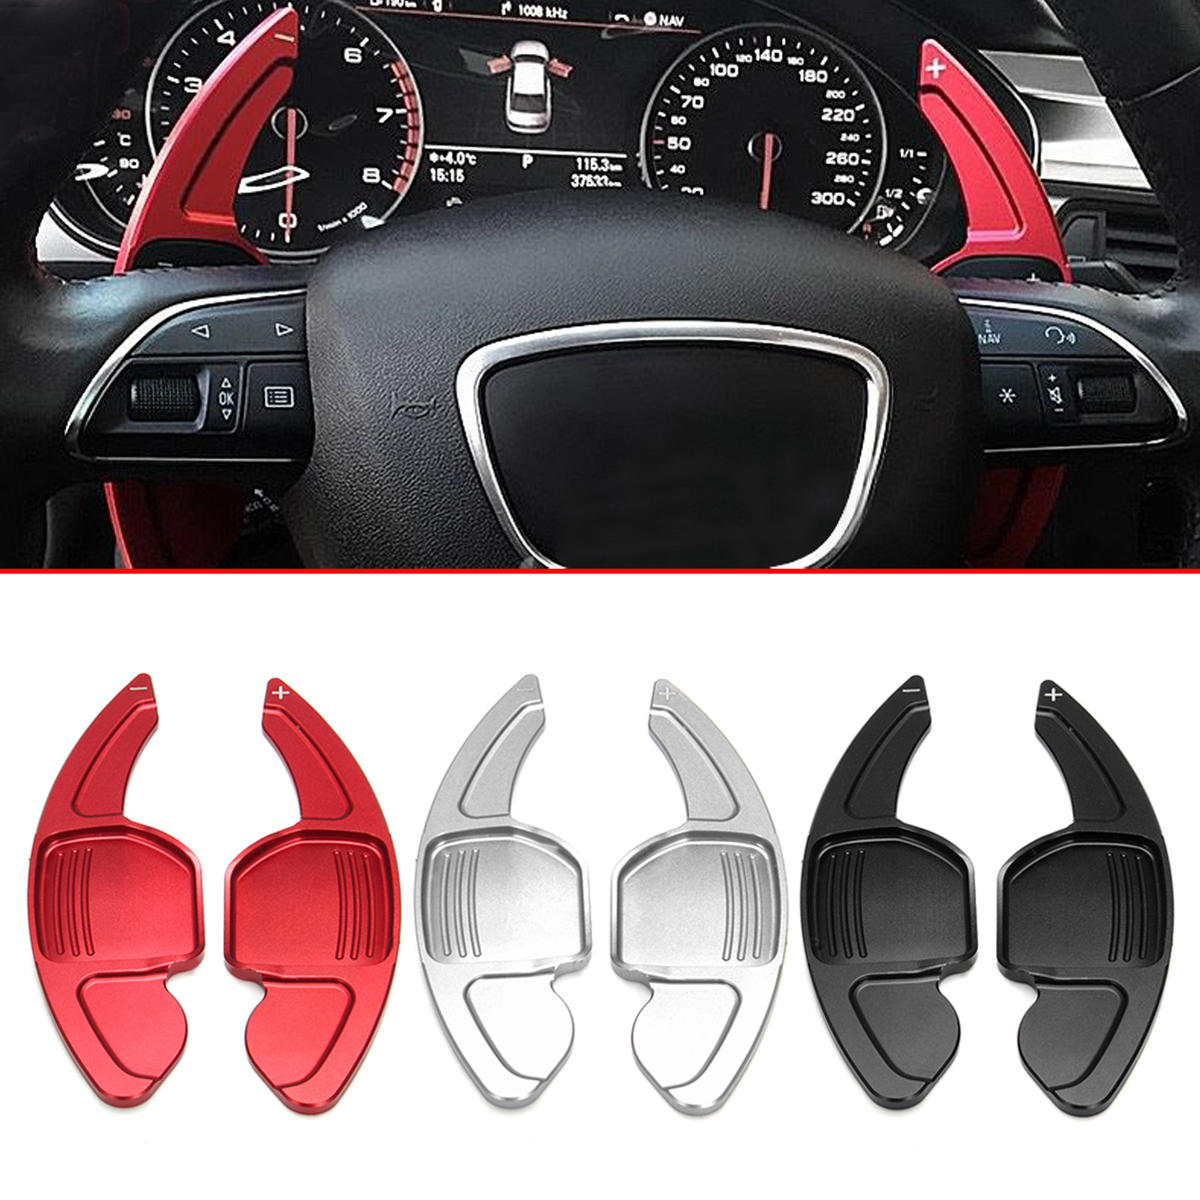 Steering Wheel Shift Gear paddle Extension Audi A6 S6 A5 S5 A4 S4 Q5 before 2012